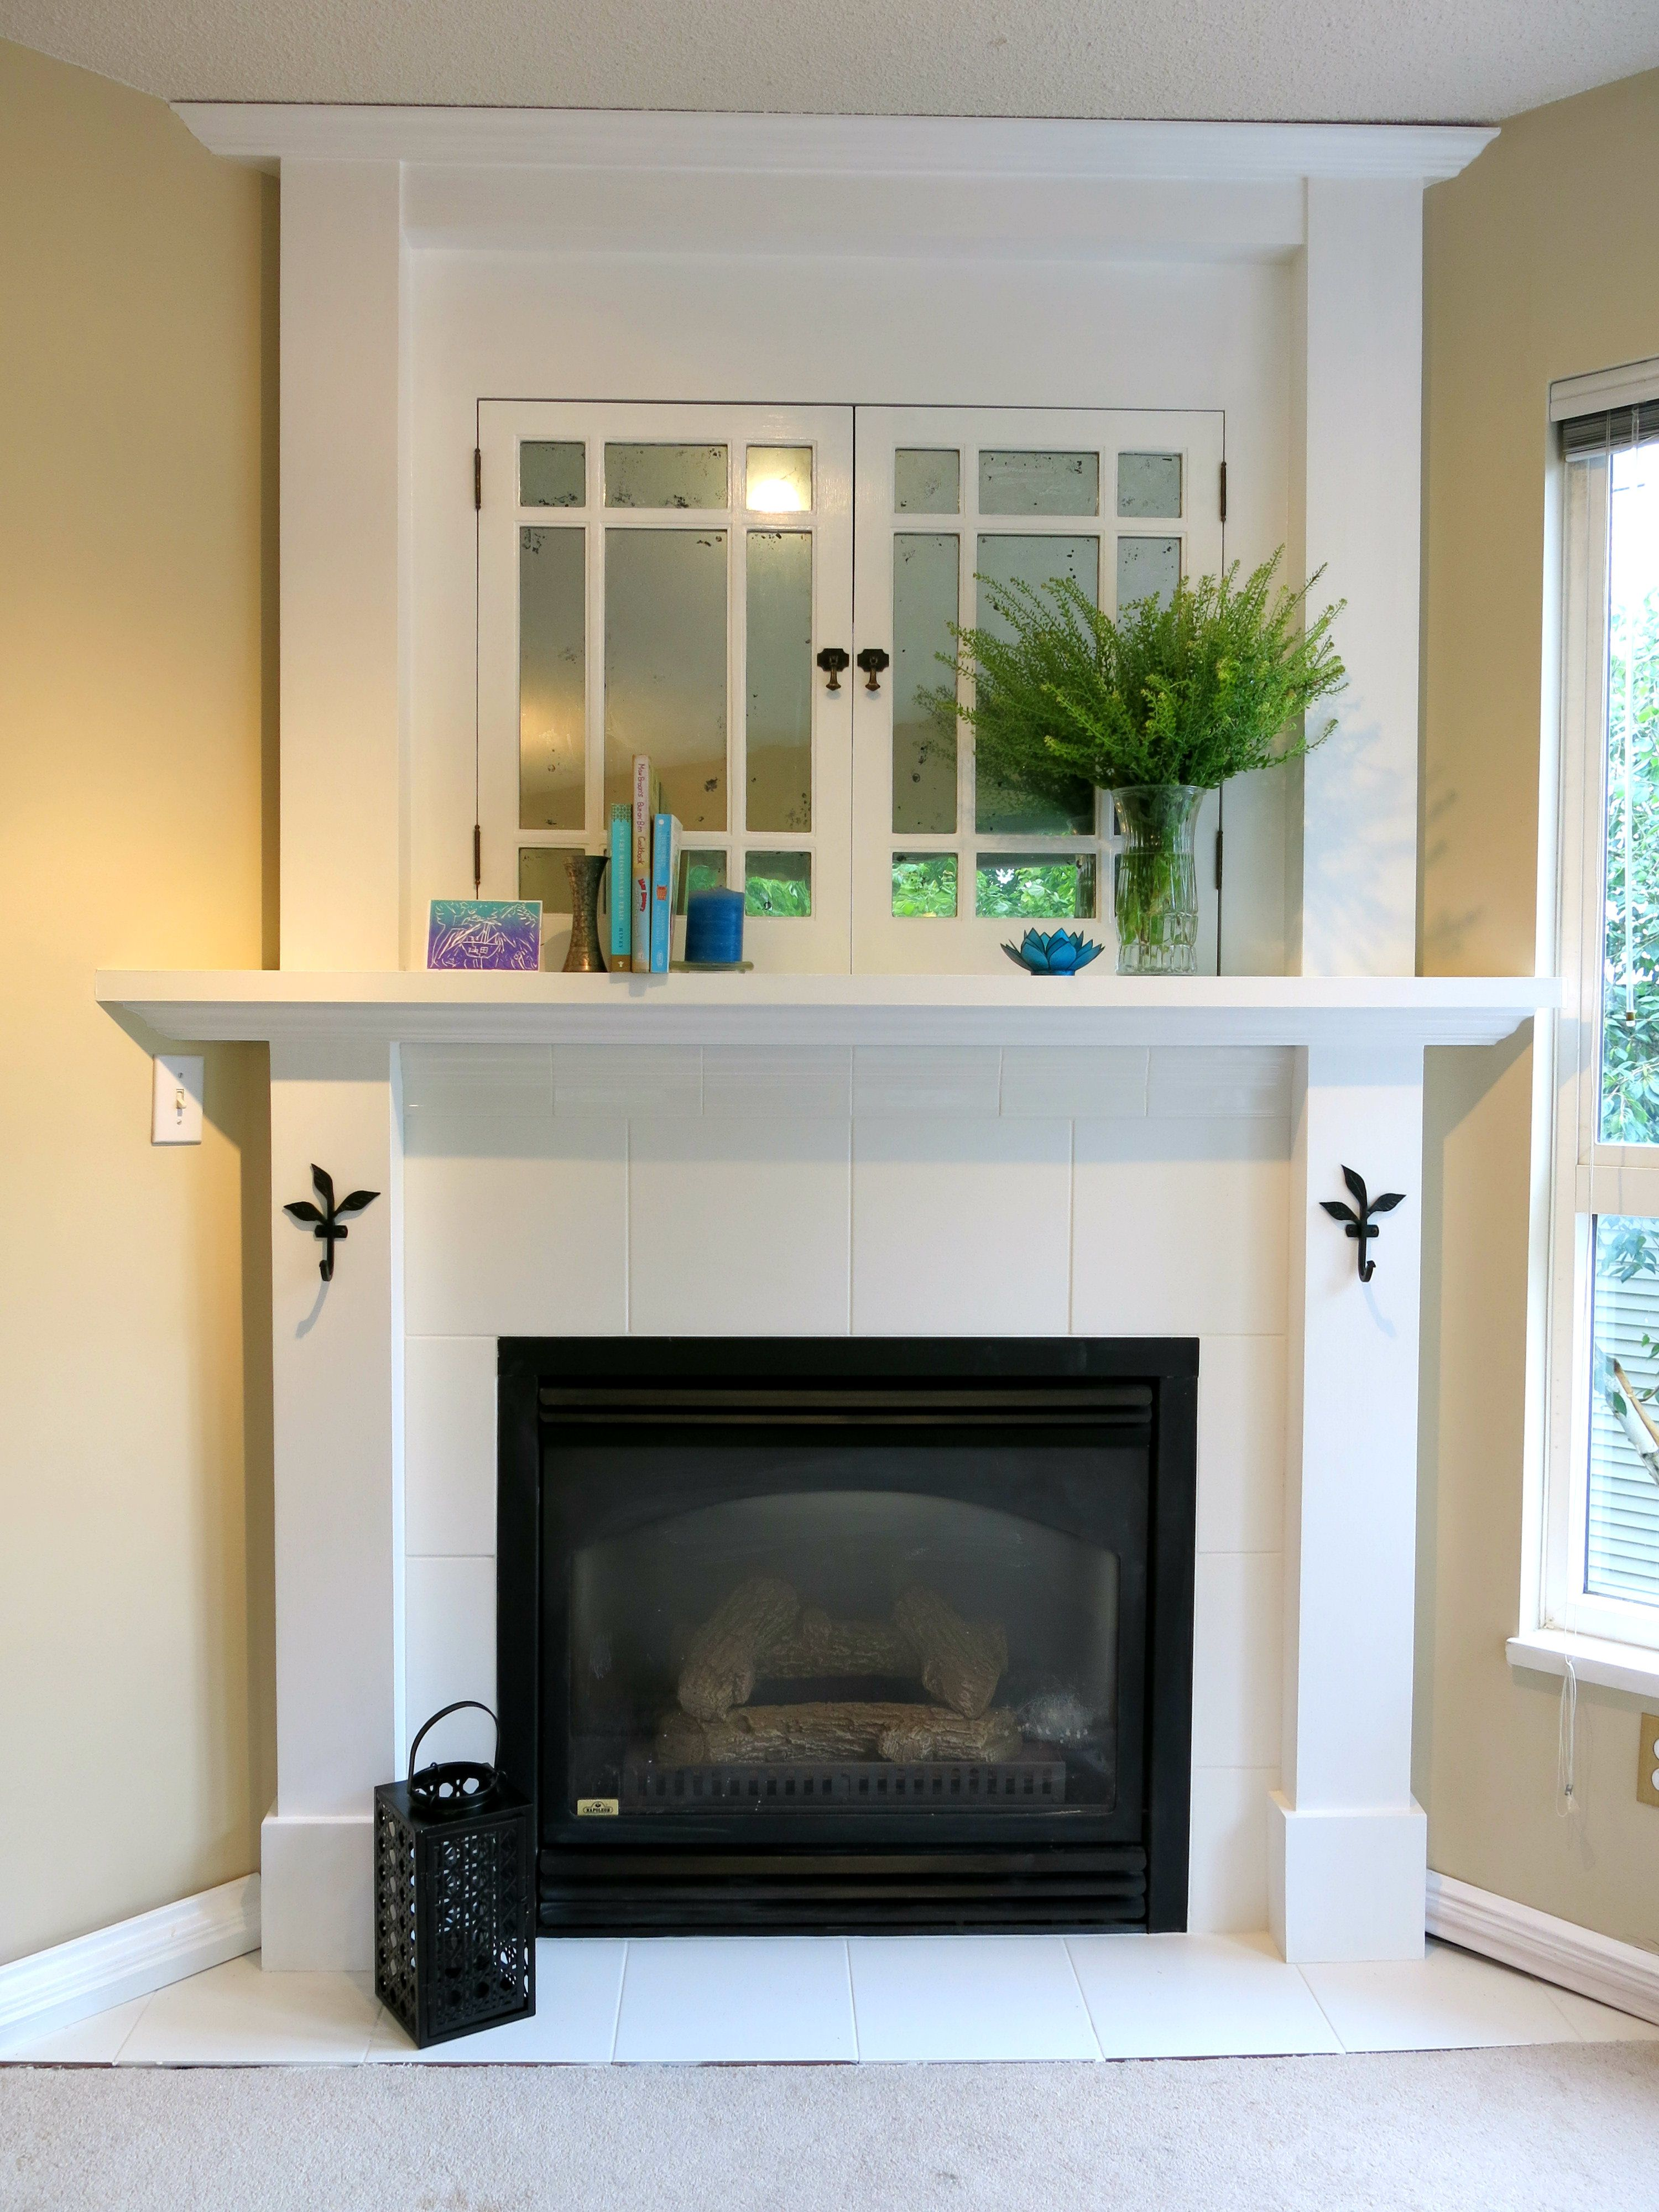 Faux Mercury Glass Old Cabinet Doors, White Tile Fireplace Surround,  Vintage Entertainment Unit,